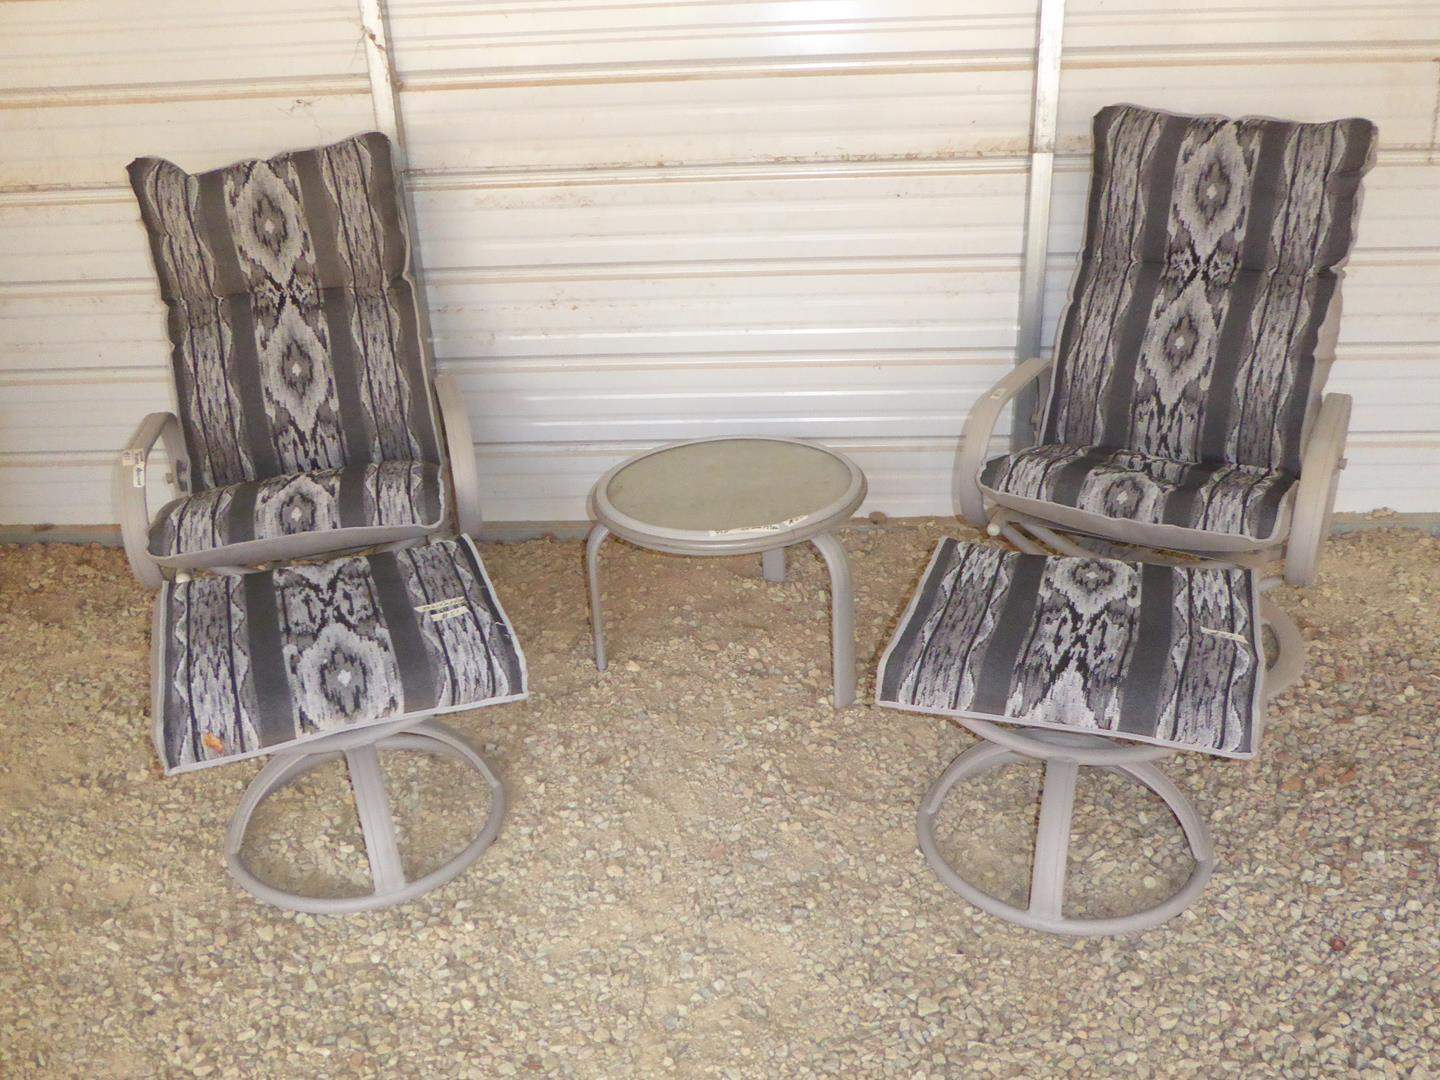 Lot # 51 - Quality Pair Swivel Rocker Recliner Patio Chairs w/Cushions, Matching Ottomans & Small Glass Top Drink Table (main image)